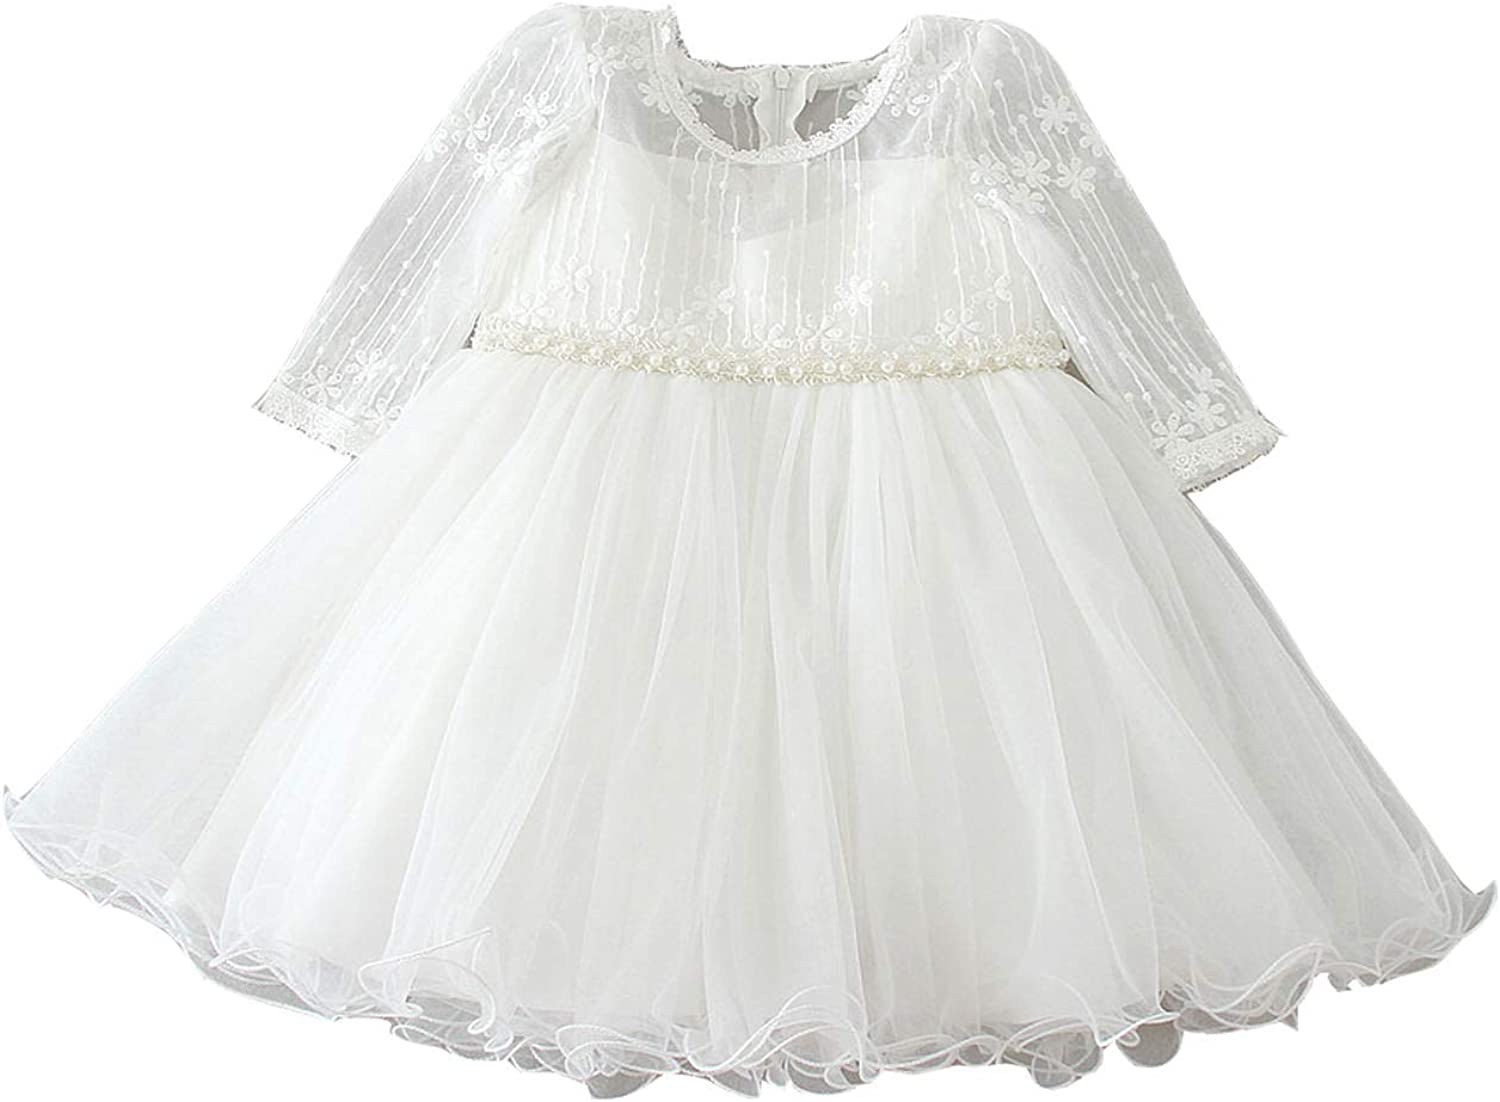 Selene Long Sleeves Ivory Embroidery Lace Christening Gown Baby Girls Kids Formal Wedding Birthday Party Bridesmaid Dress Baby Baptism Gown